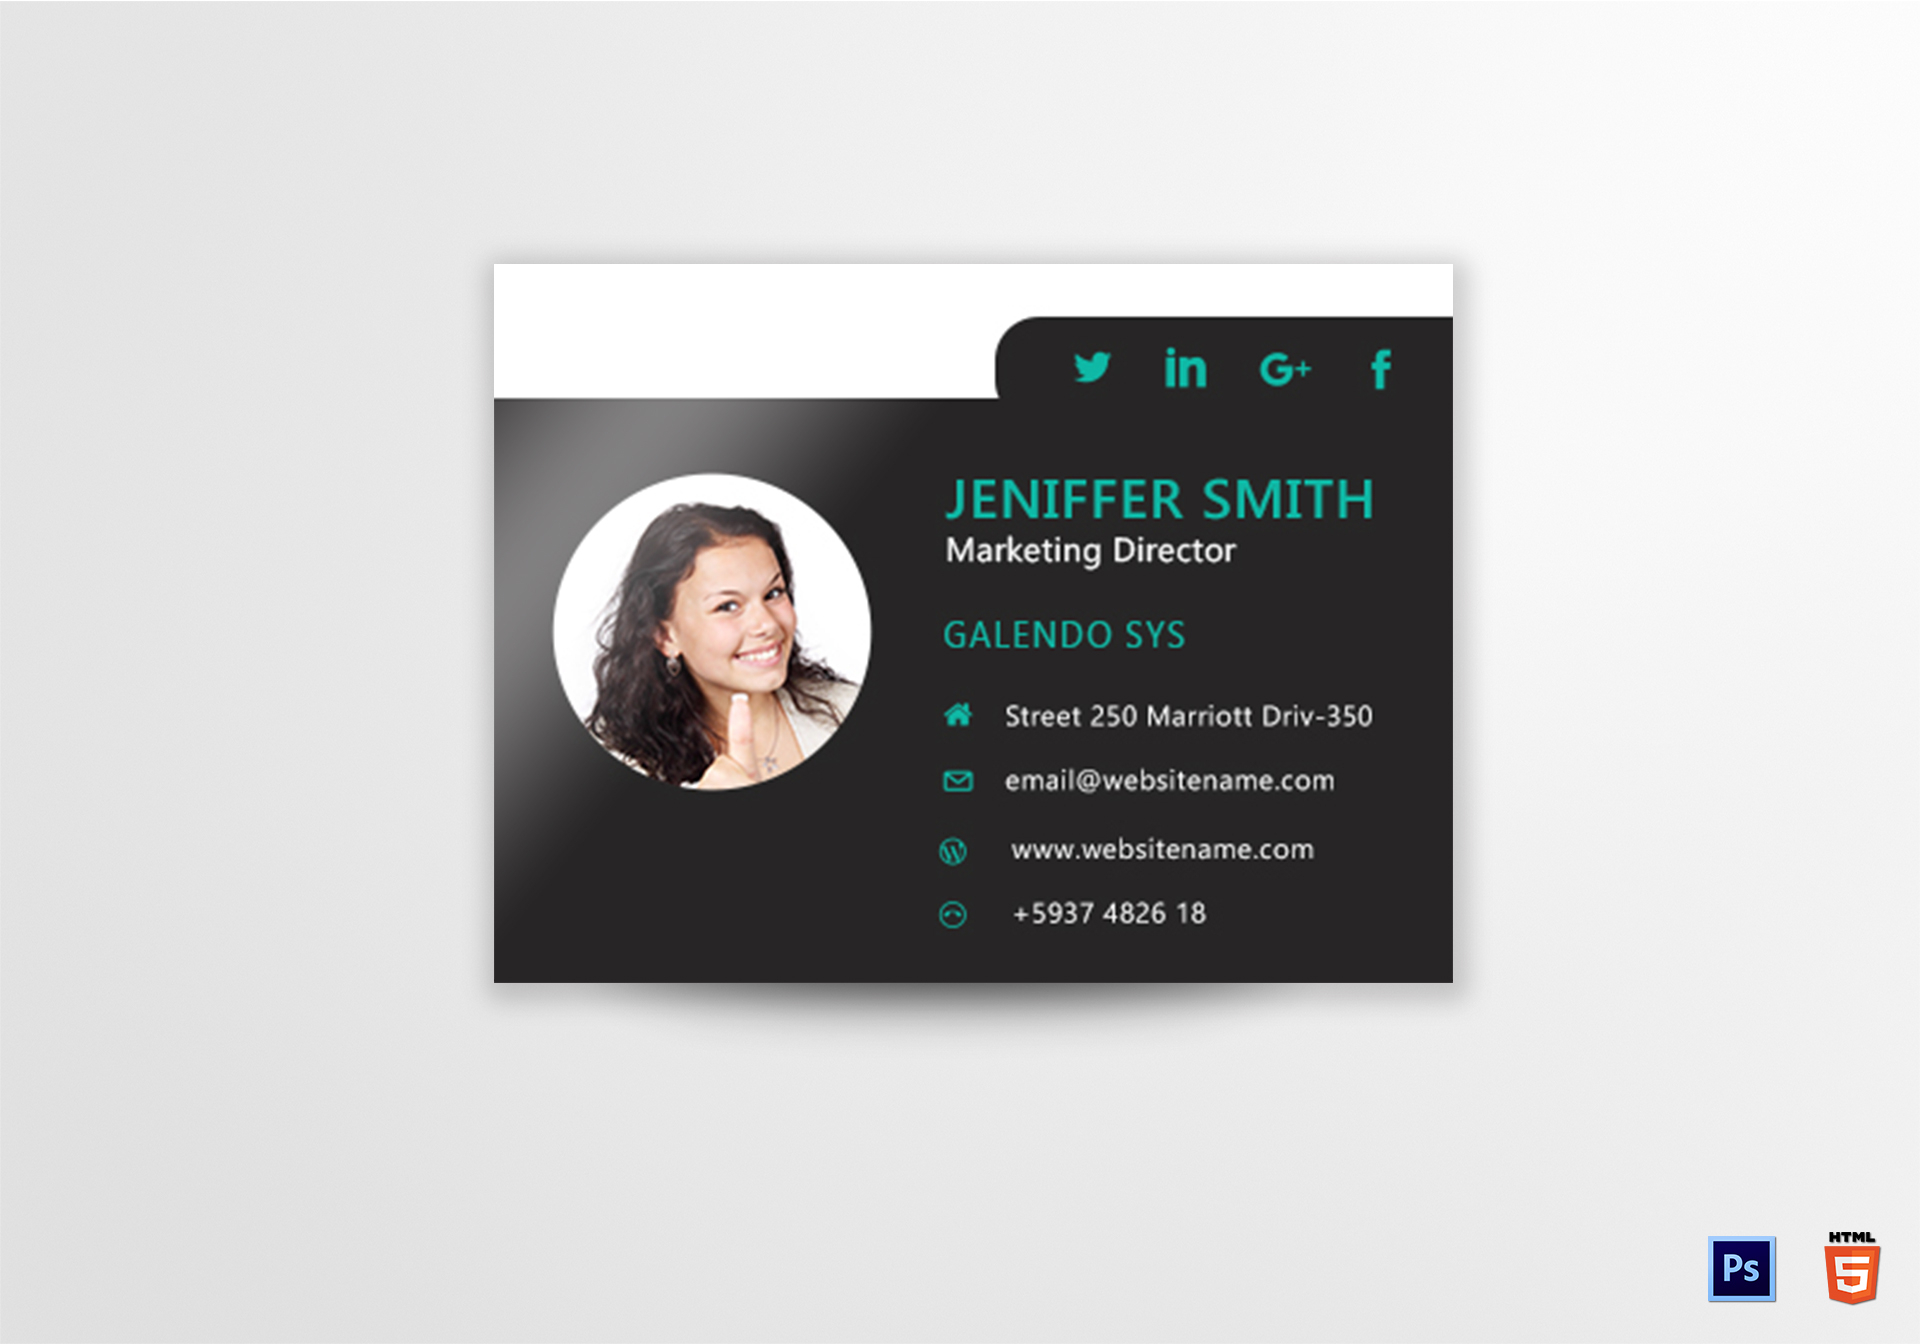 Marketing Director Email Signature Design Template in PSD, HTML